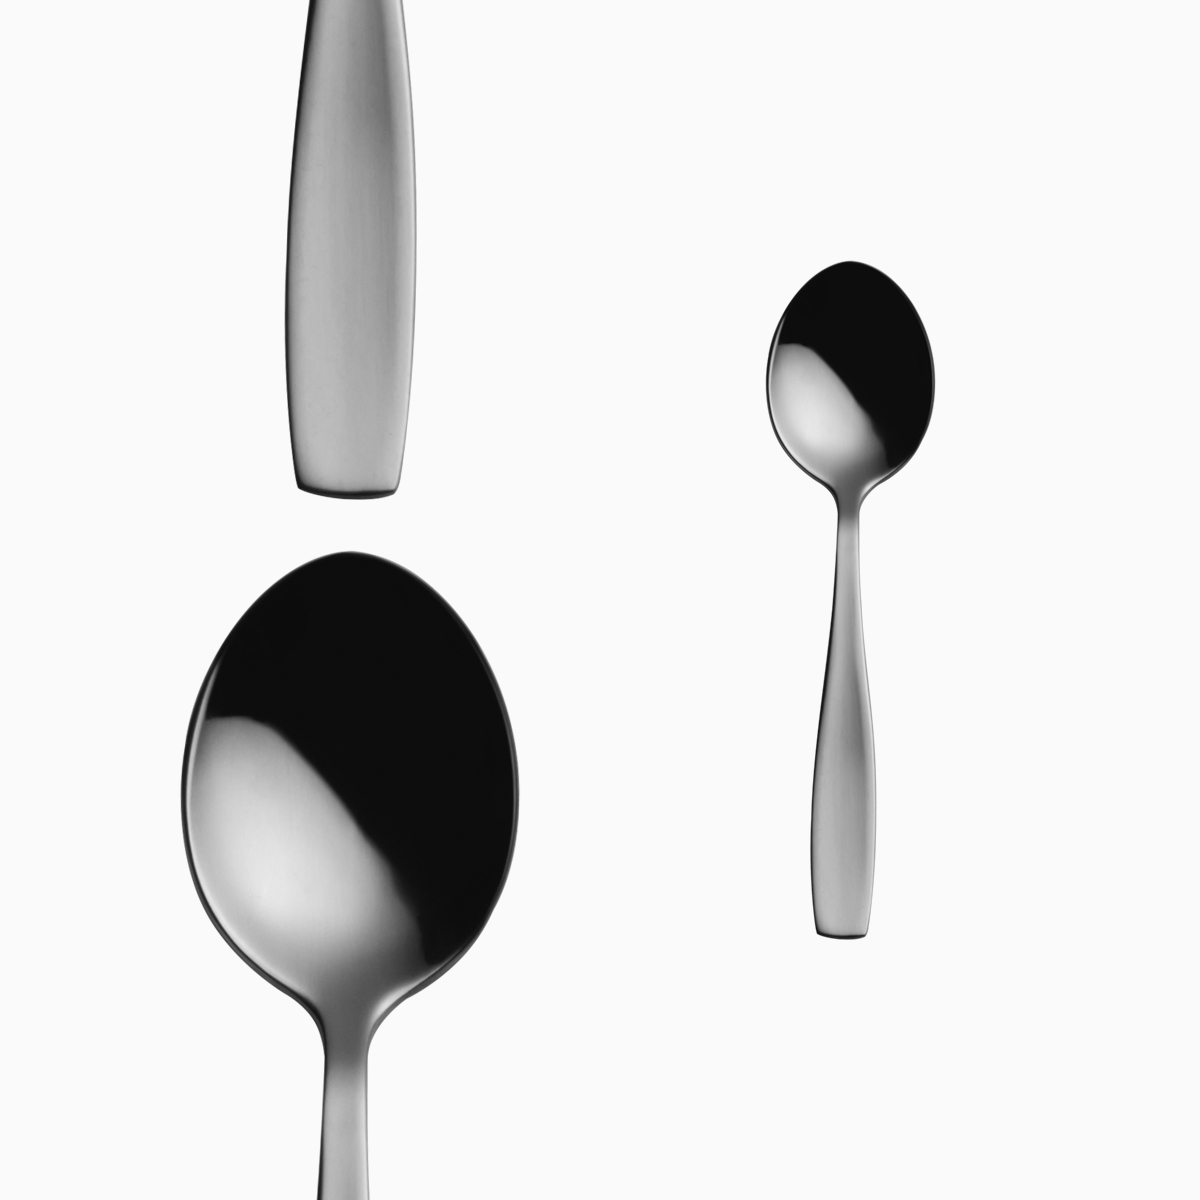 Coffee spoon - Europa II